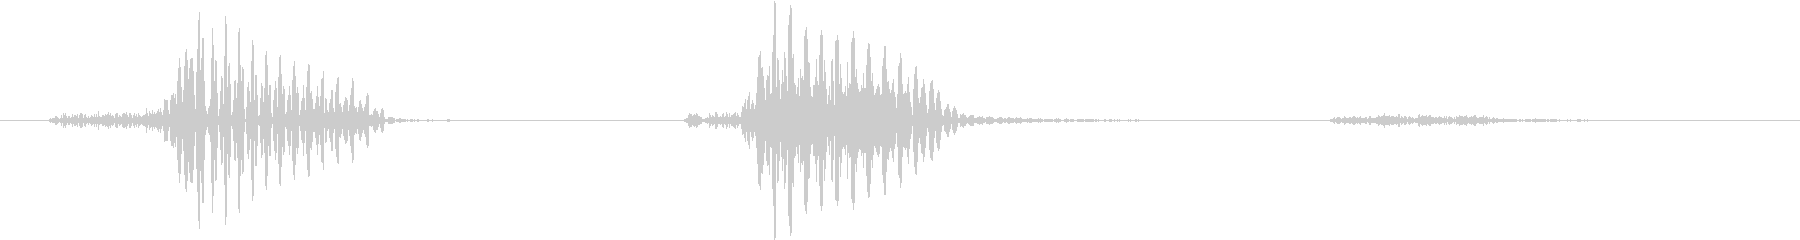 Fufufu's unreproduced waveform